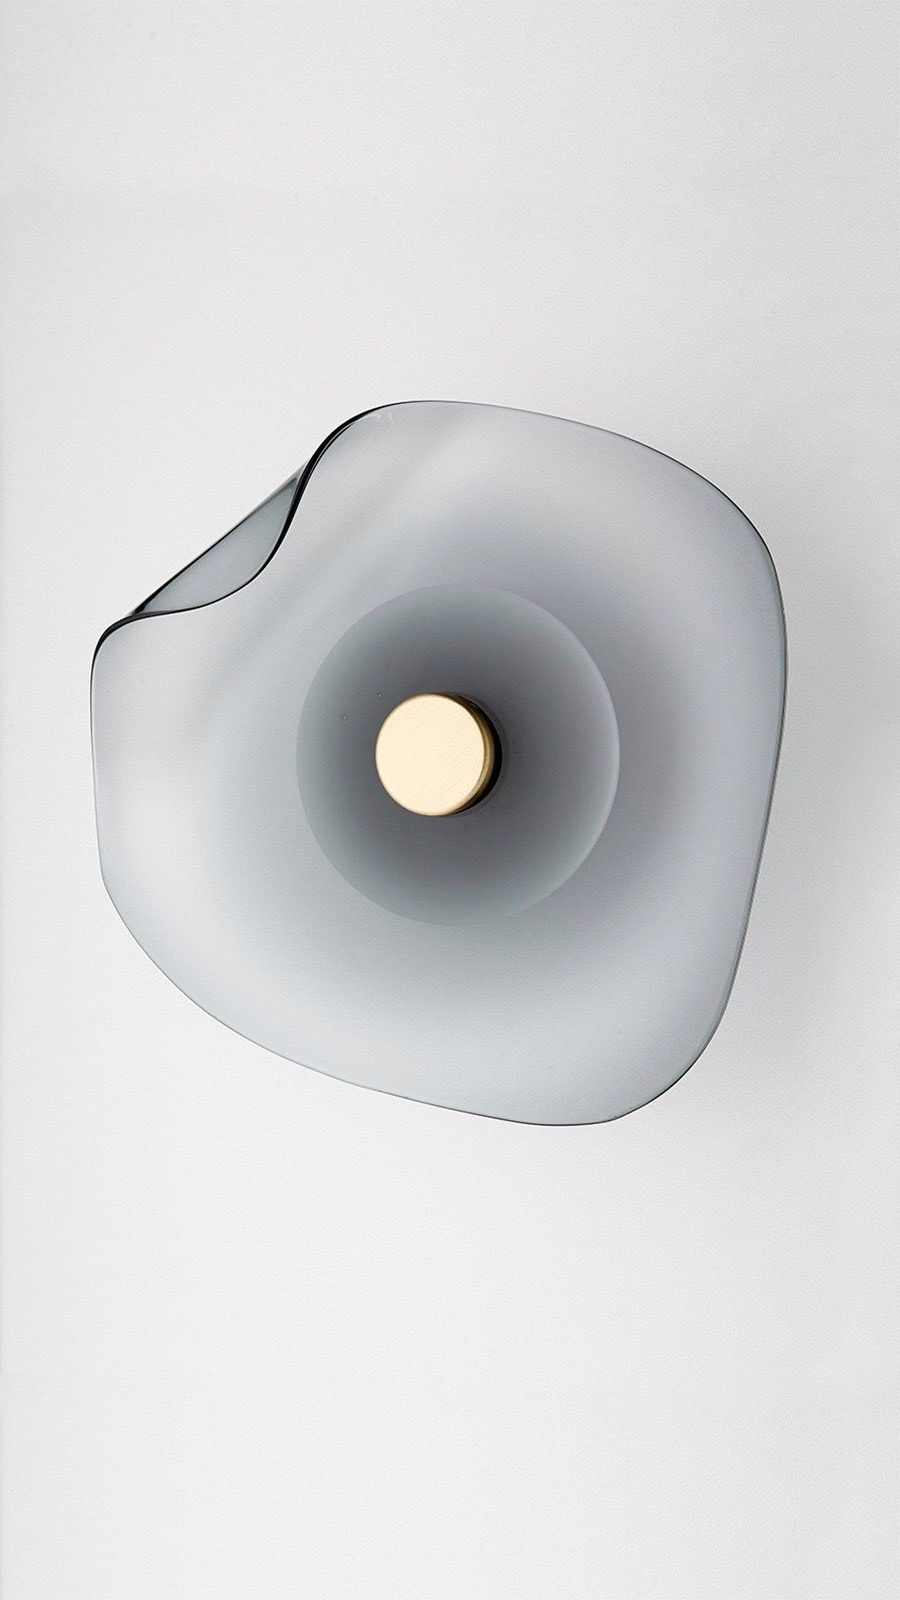 The grey version of the 'Melt' wall sconce by Articolo Architectural Lighting.